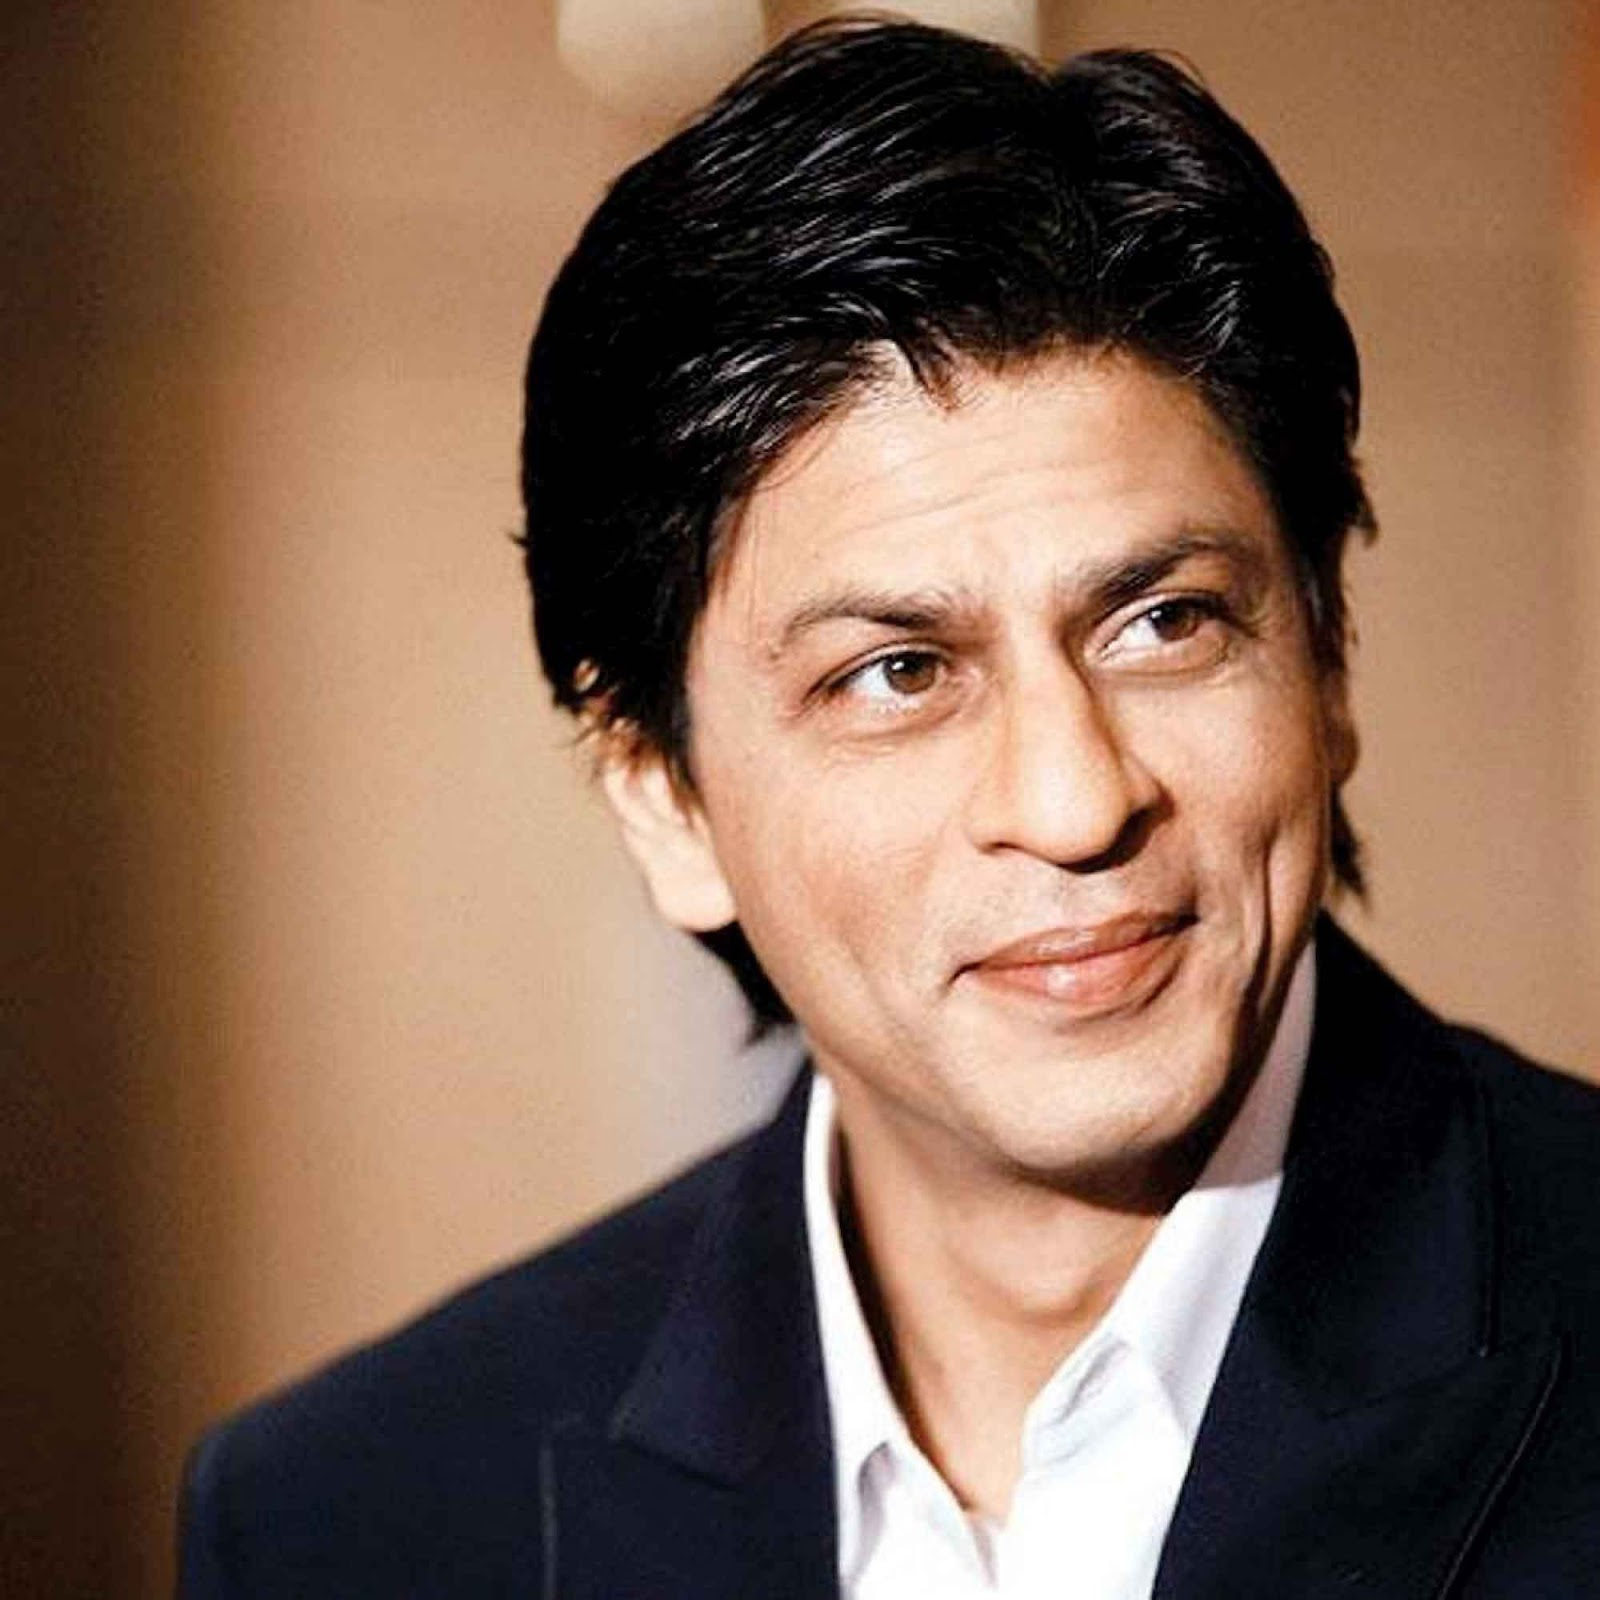 bollywood star shahrukh khan wallpapers | pattimccormick